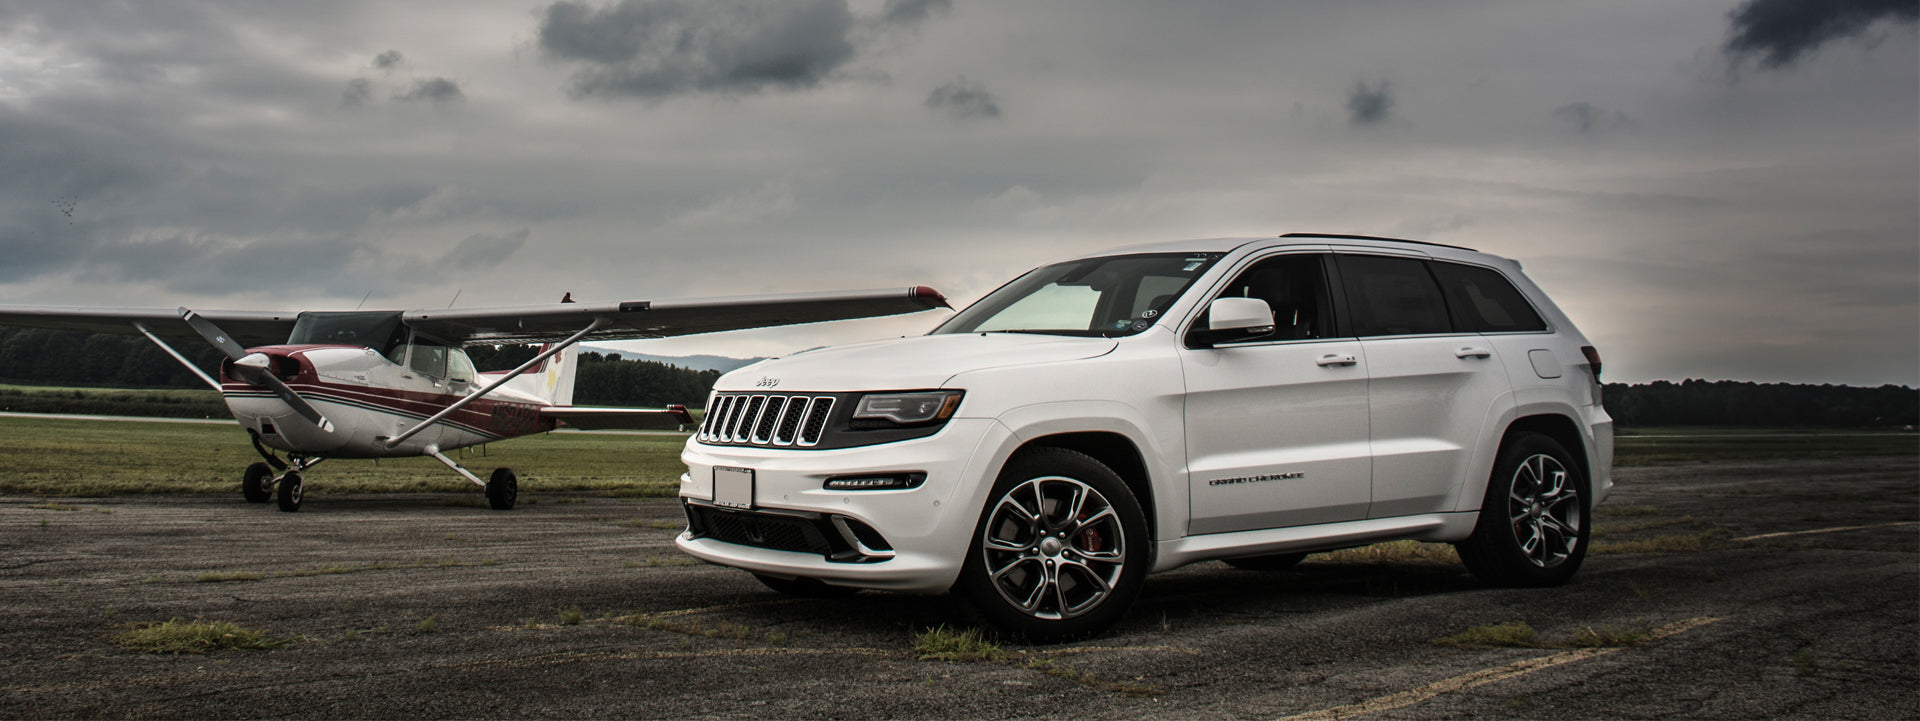 Jeep Grand Cherokee Accessories Floor Mats Cargo Trays Luggage Carriers And All Your Grand Cherokee Accessories Jeep World